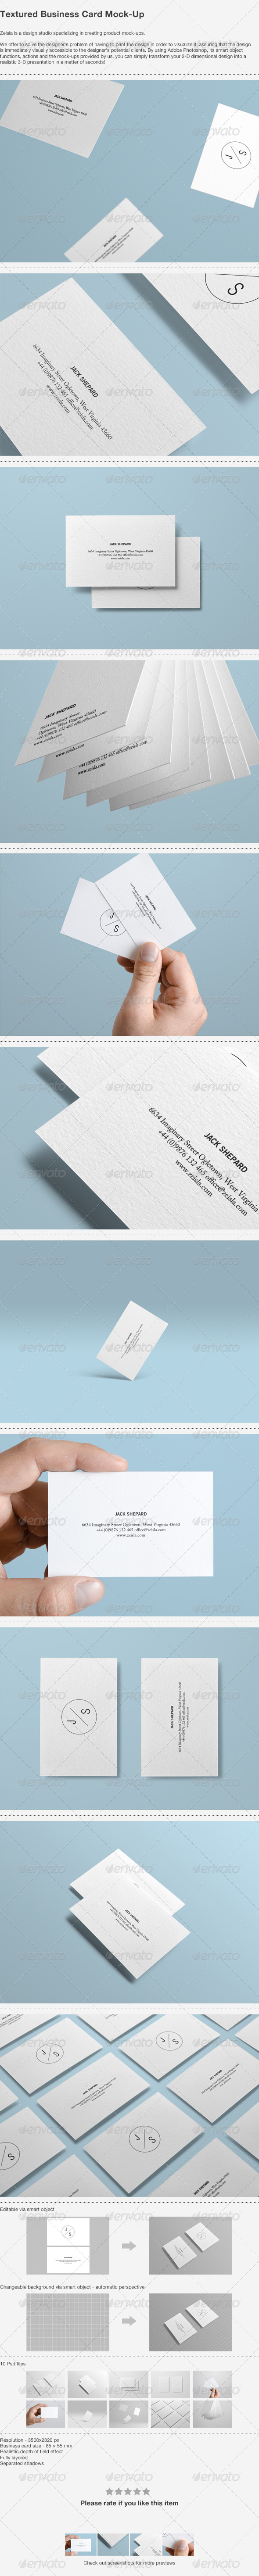 GraphicRiver Textured Business Card Mock-up 4481265